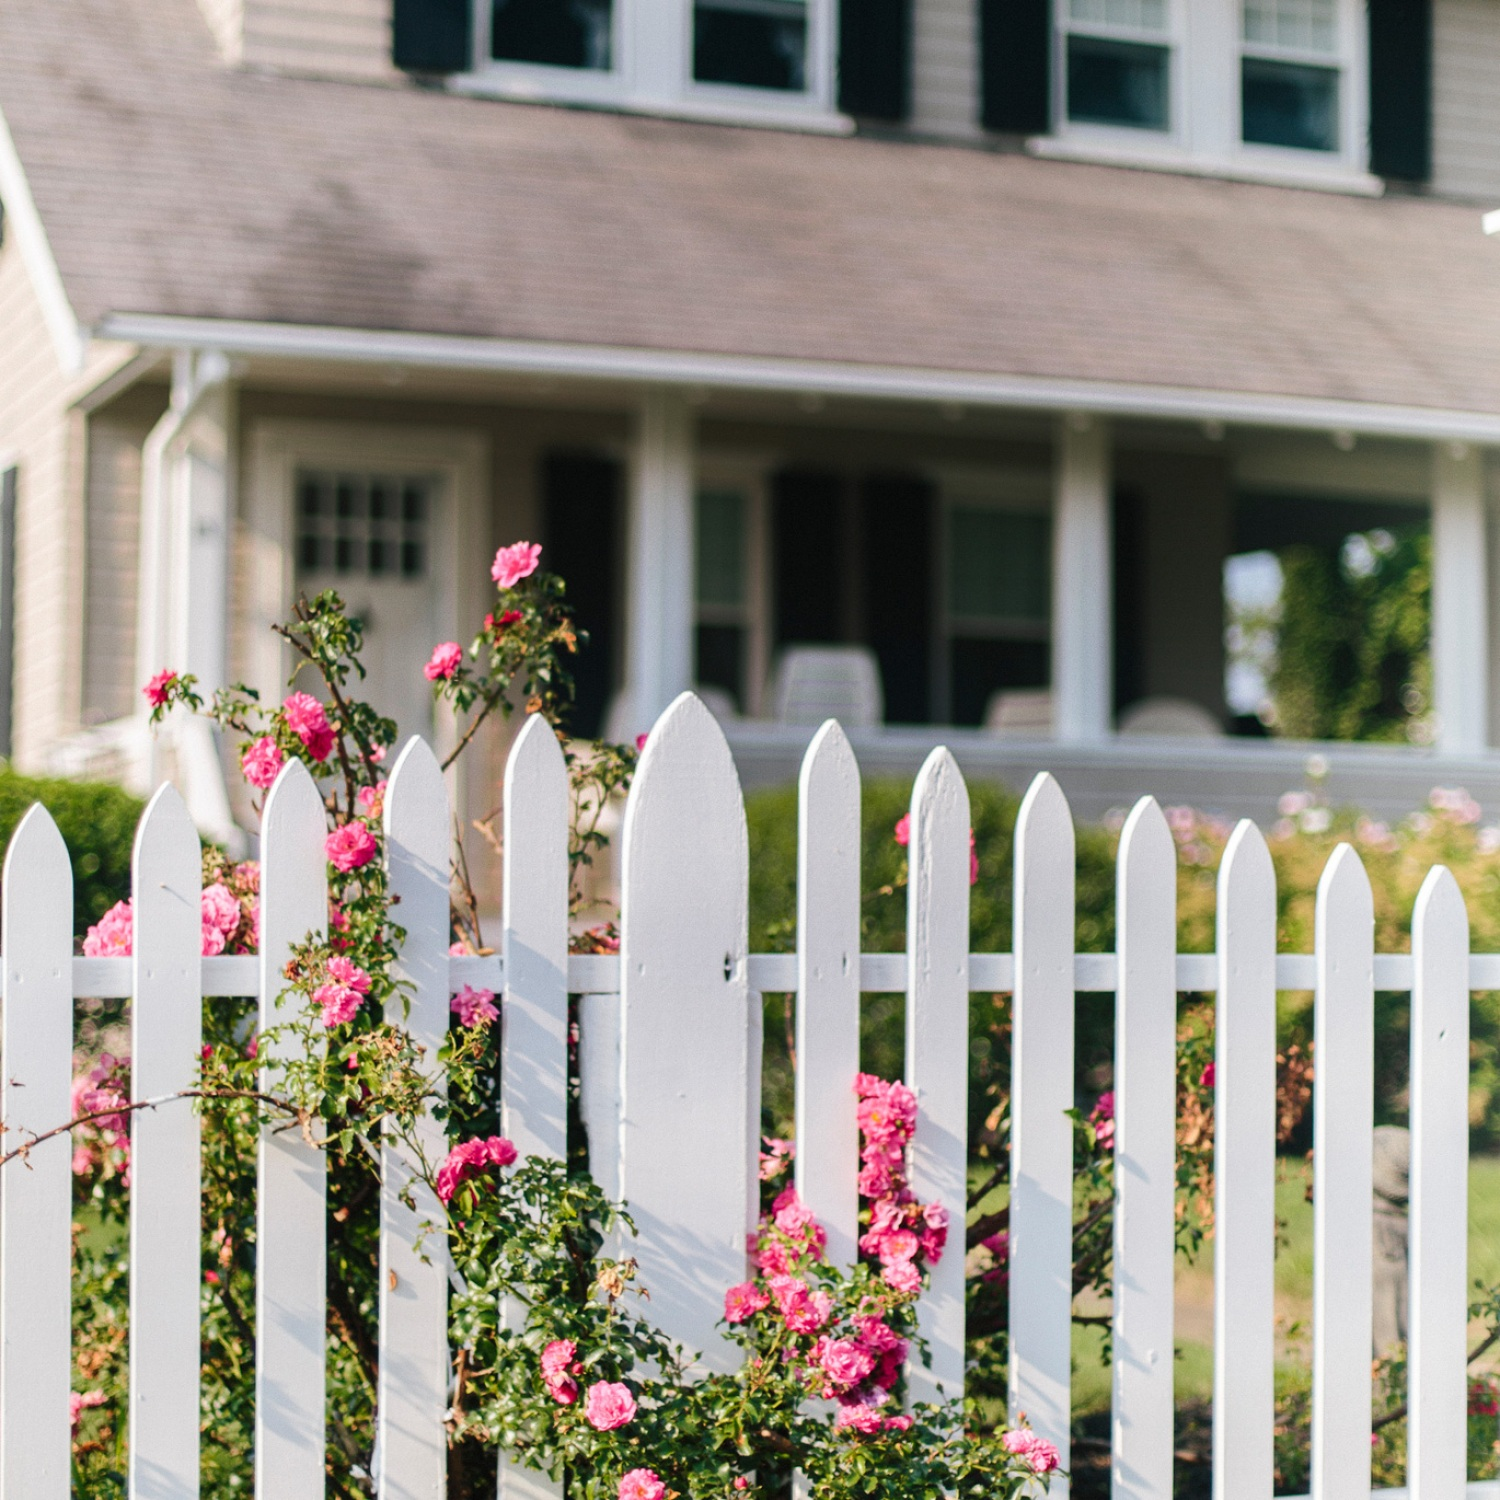 Pink roses climbing on a home's white picket fence